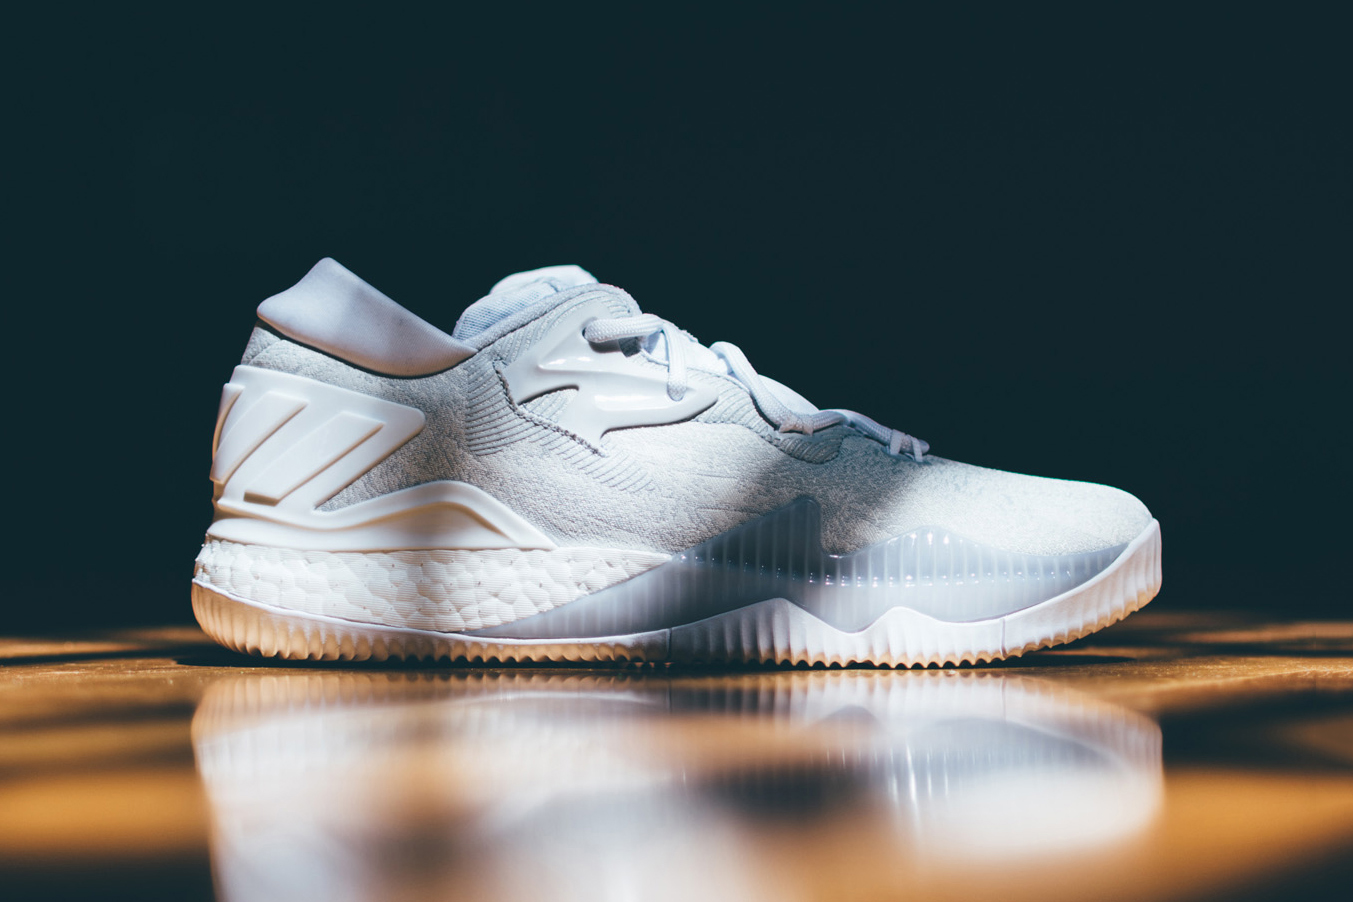 adidas Introduces the Latest Evolution of the Crazylight